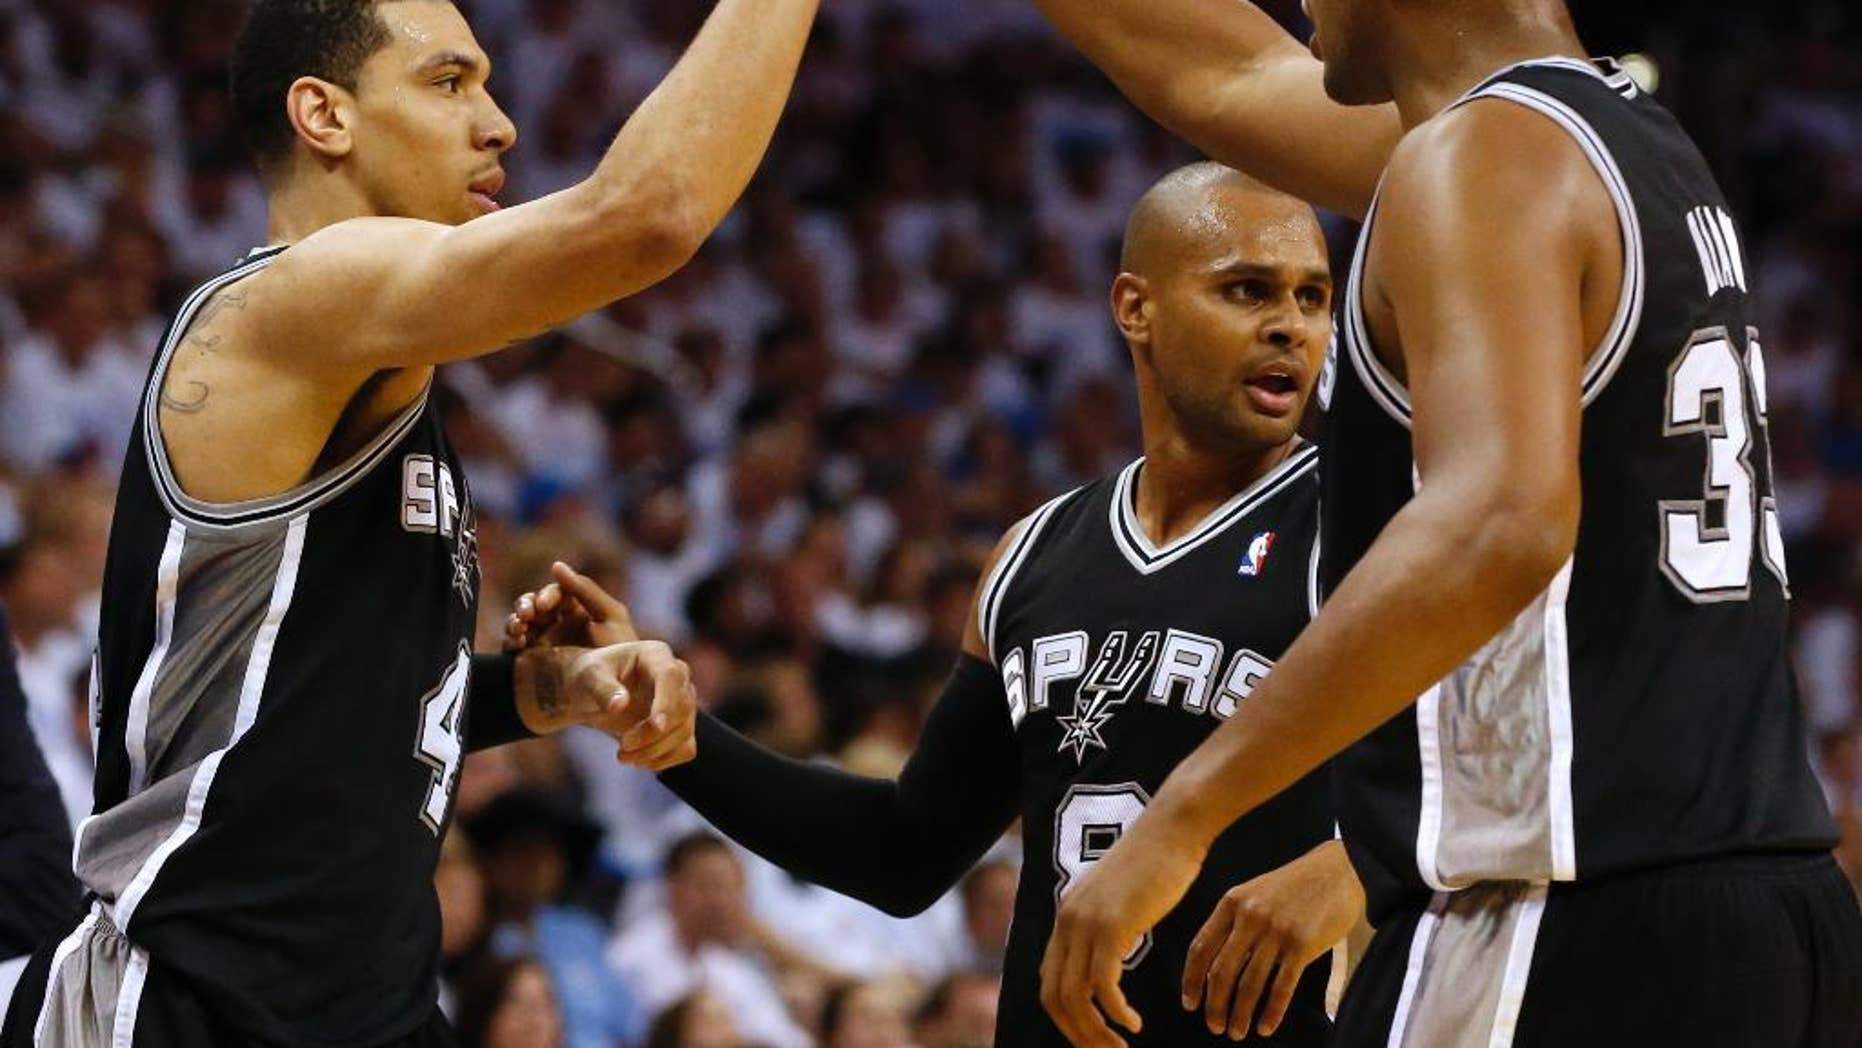 It S An Nba Finals Rematch Spurs Vs Heat In The Title Series For 2nd Straight Year Fox News